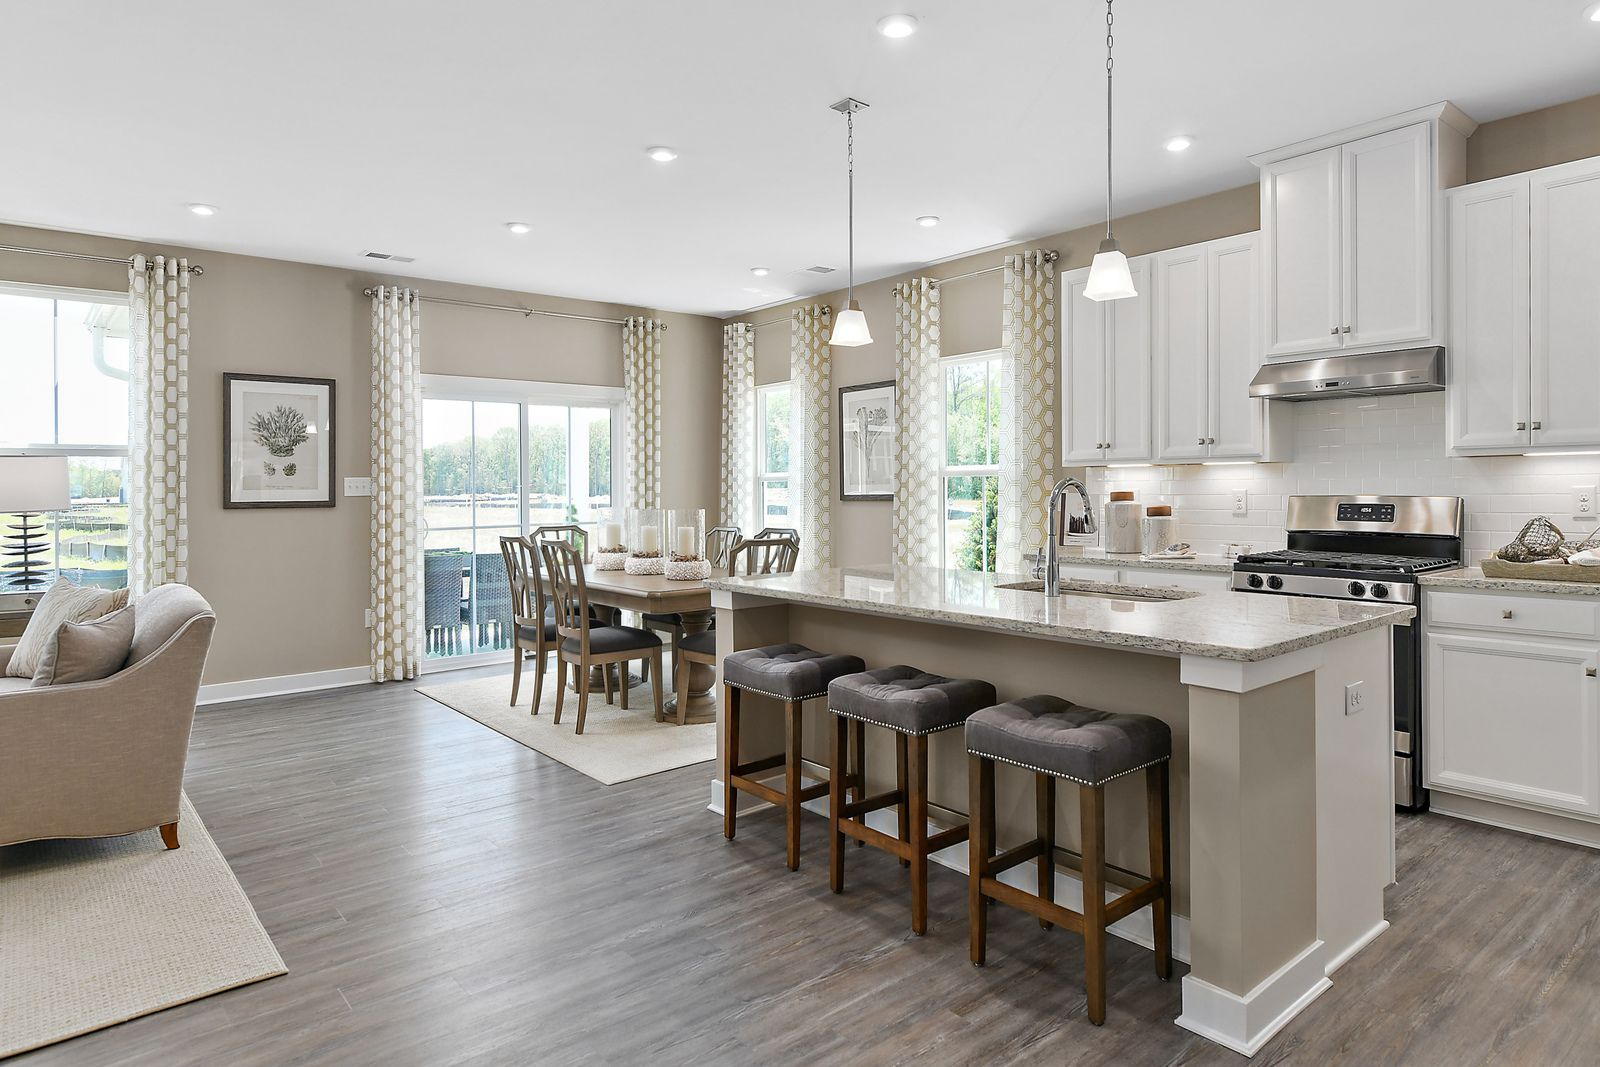 Kitchen featured in the Ashbrooke By Ryan Homes in Washington, MD